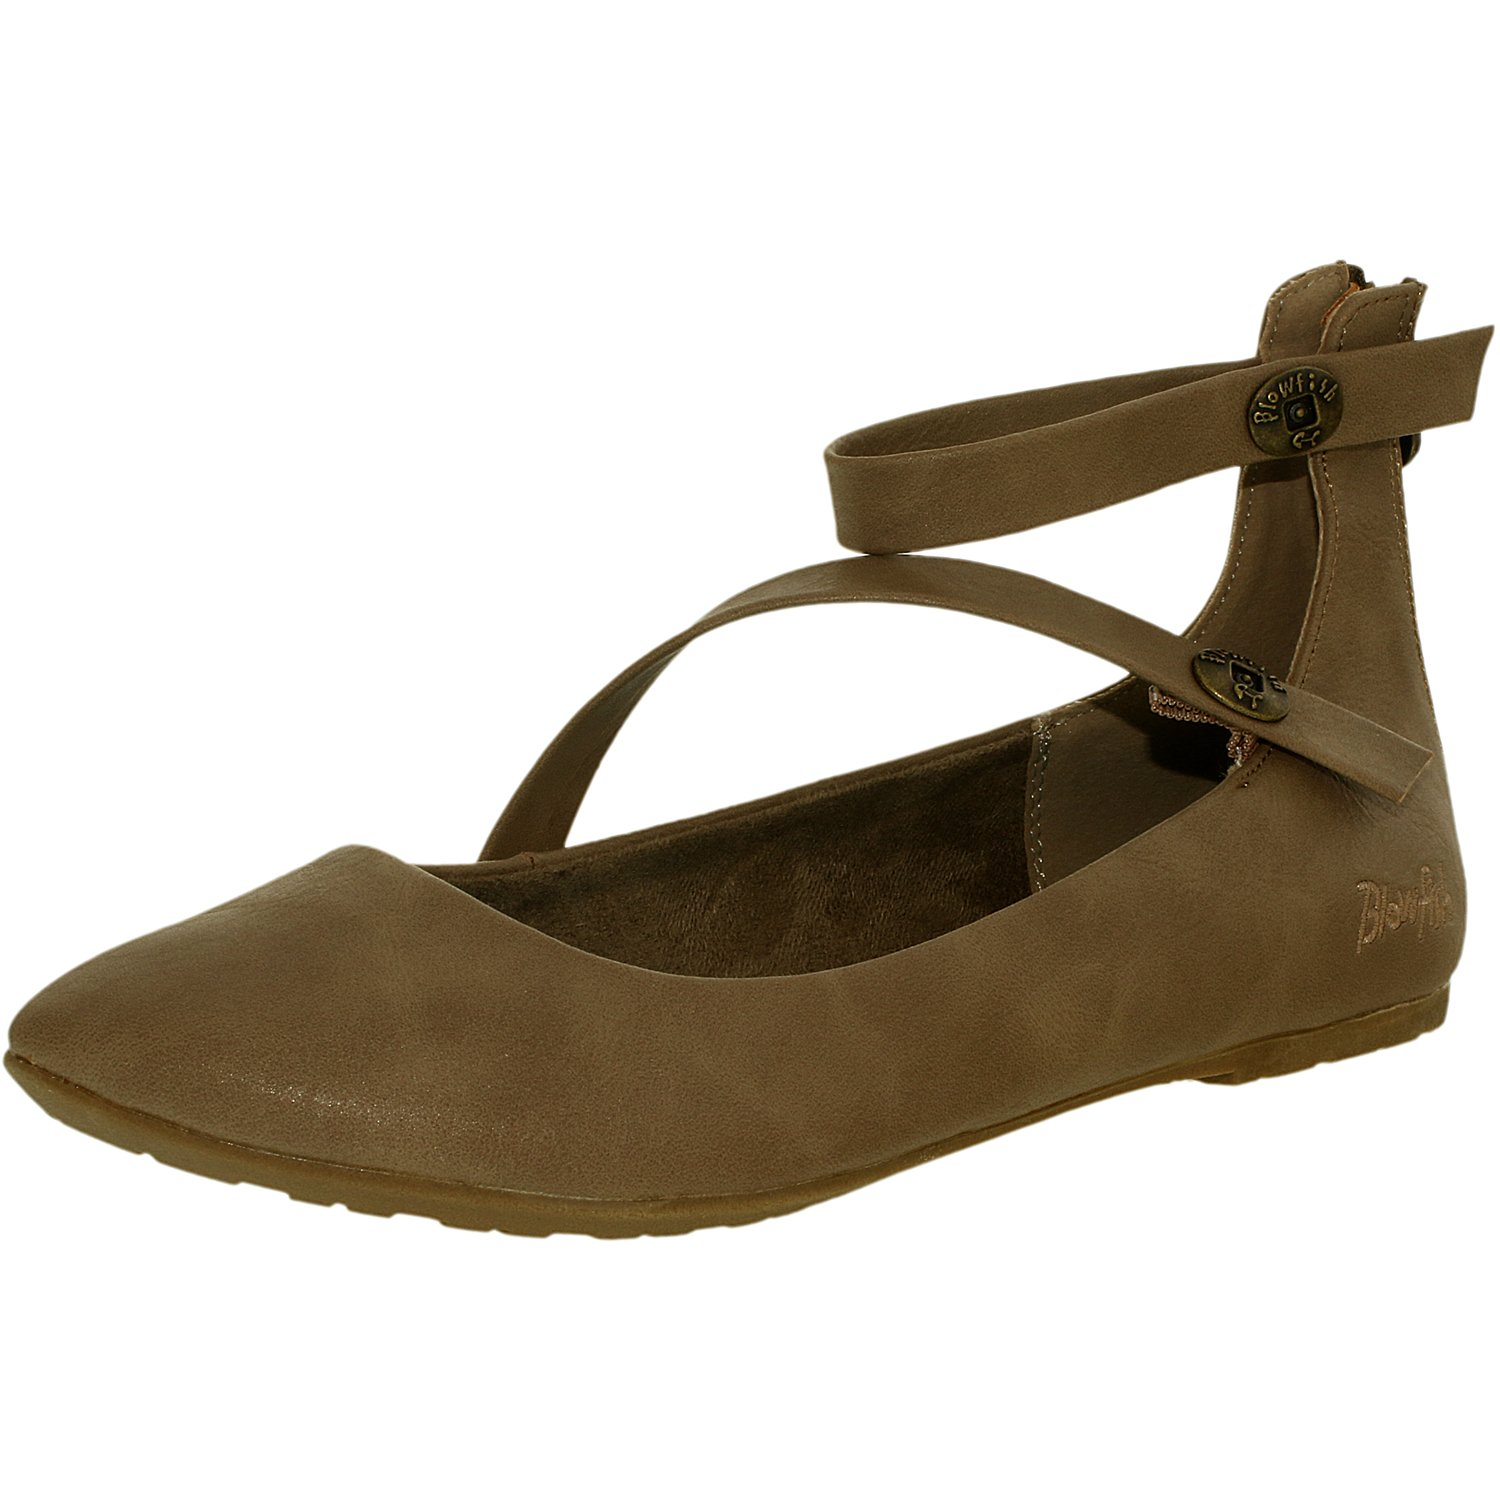 Blowfish Women's Ranton Synthetic Toast Old Ranger Ankle-High Leather Ballet Flat - 7M